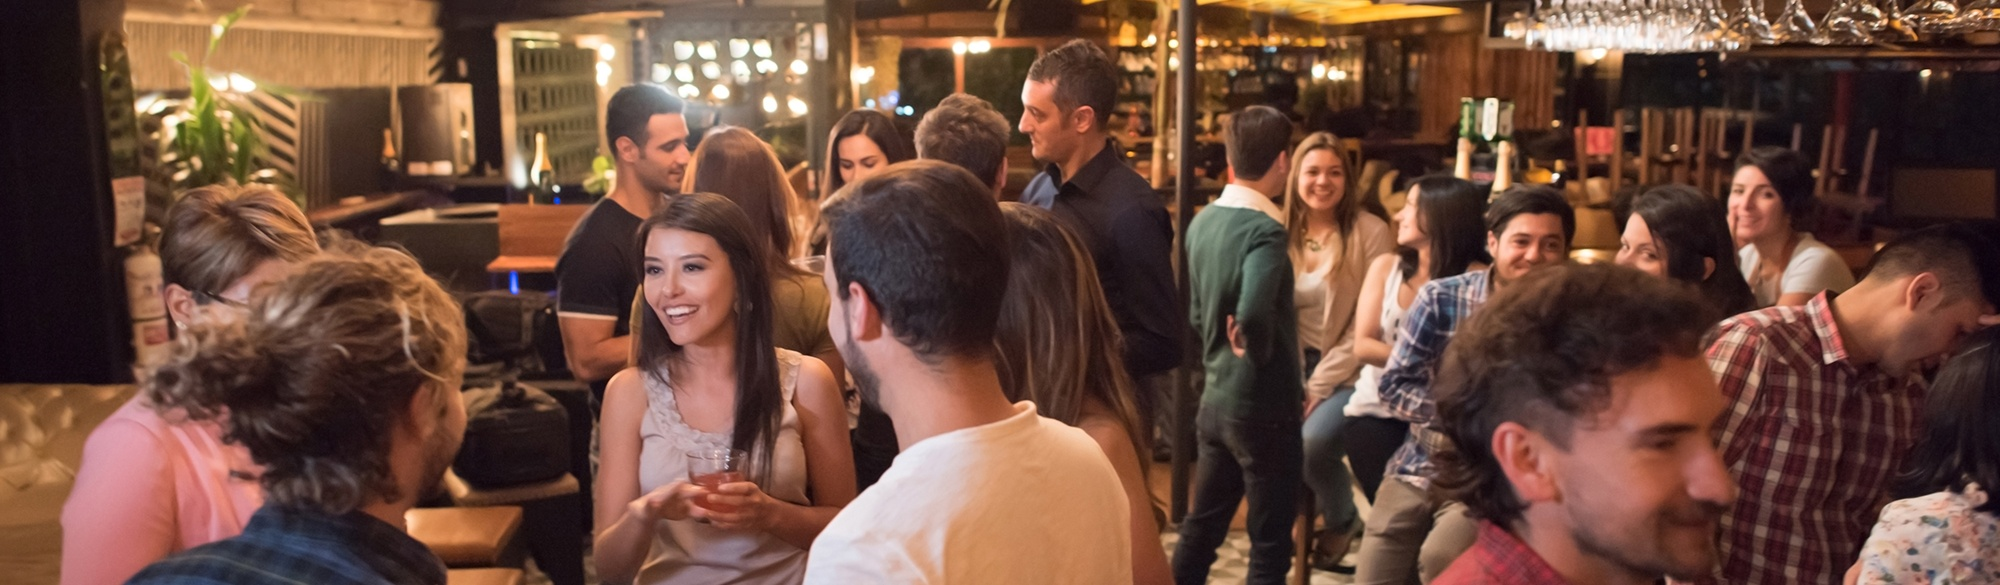 Crowd header with drinks